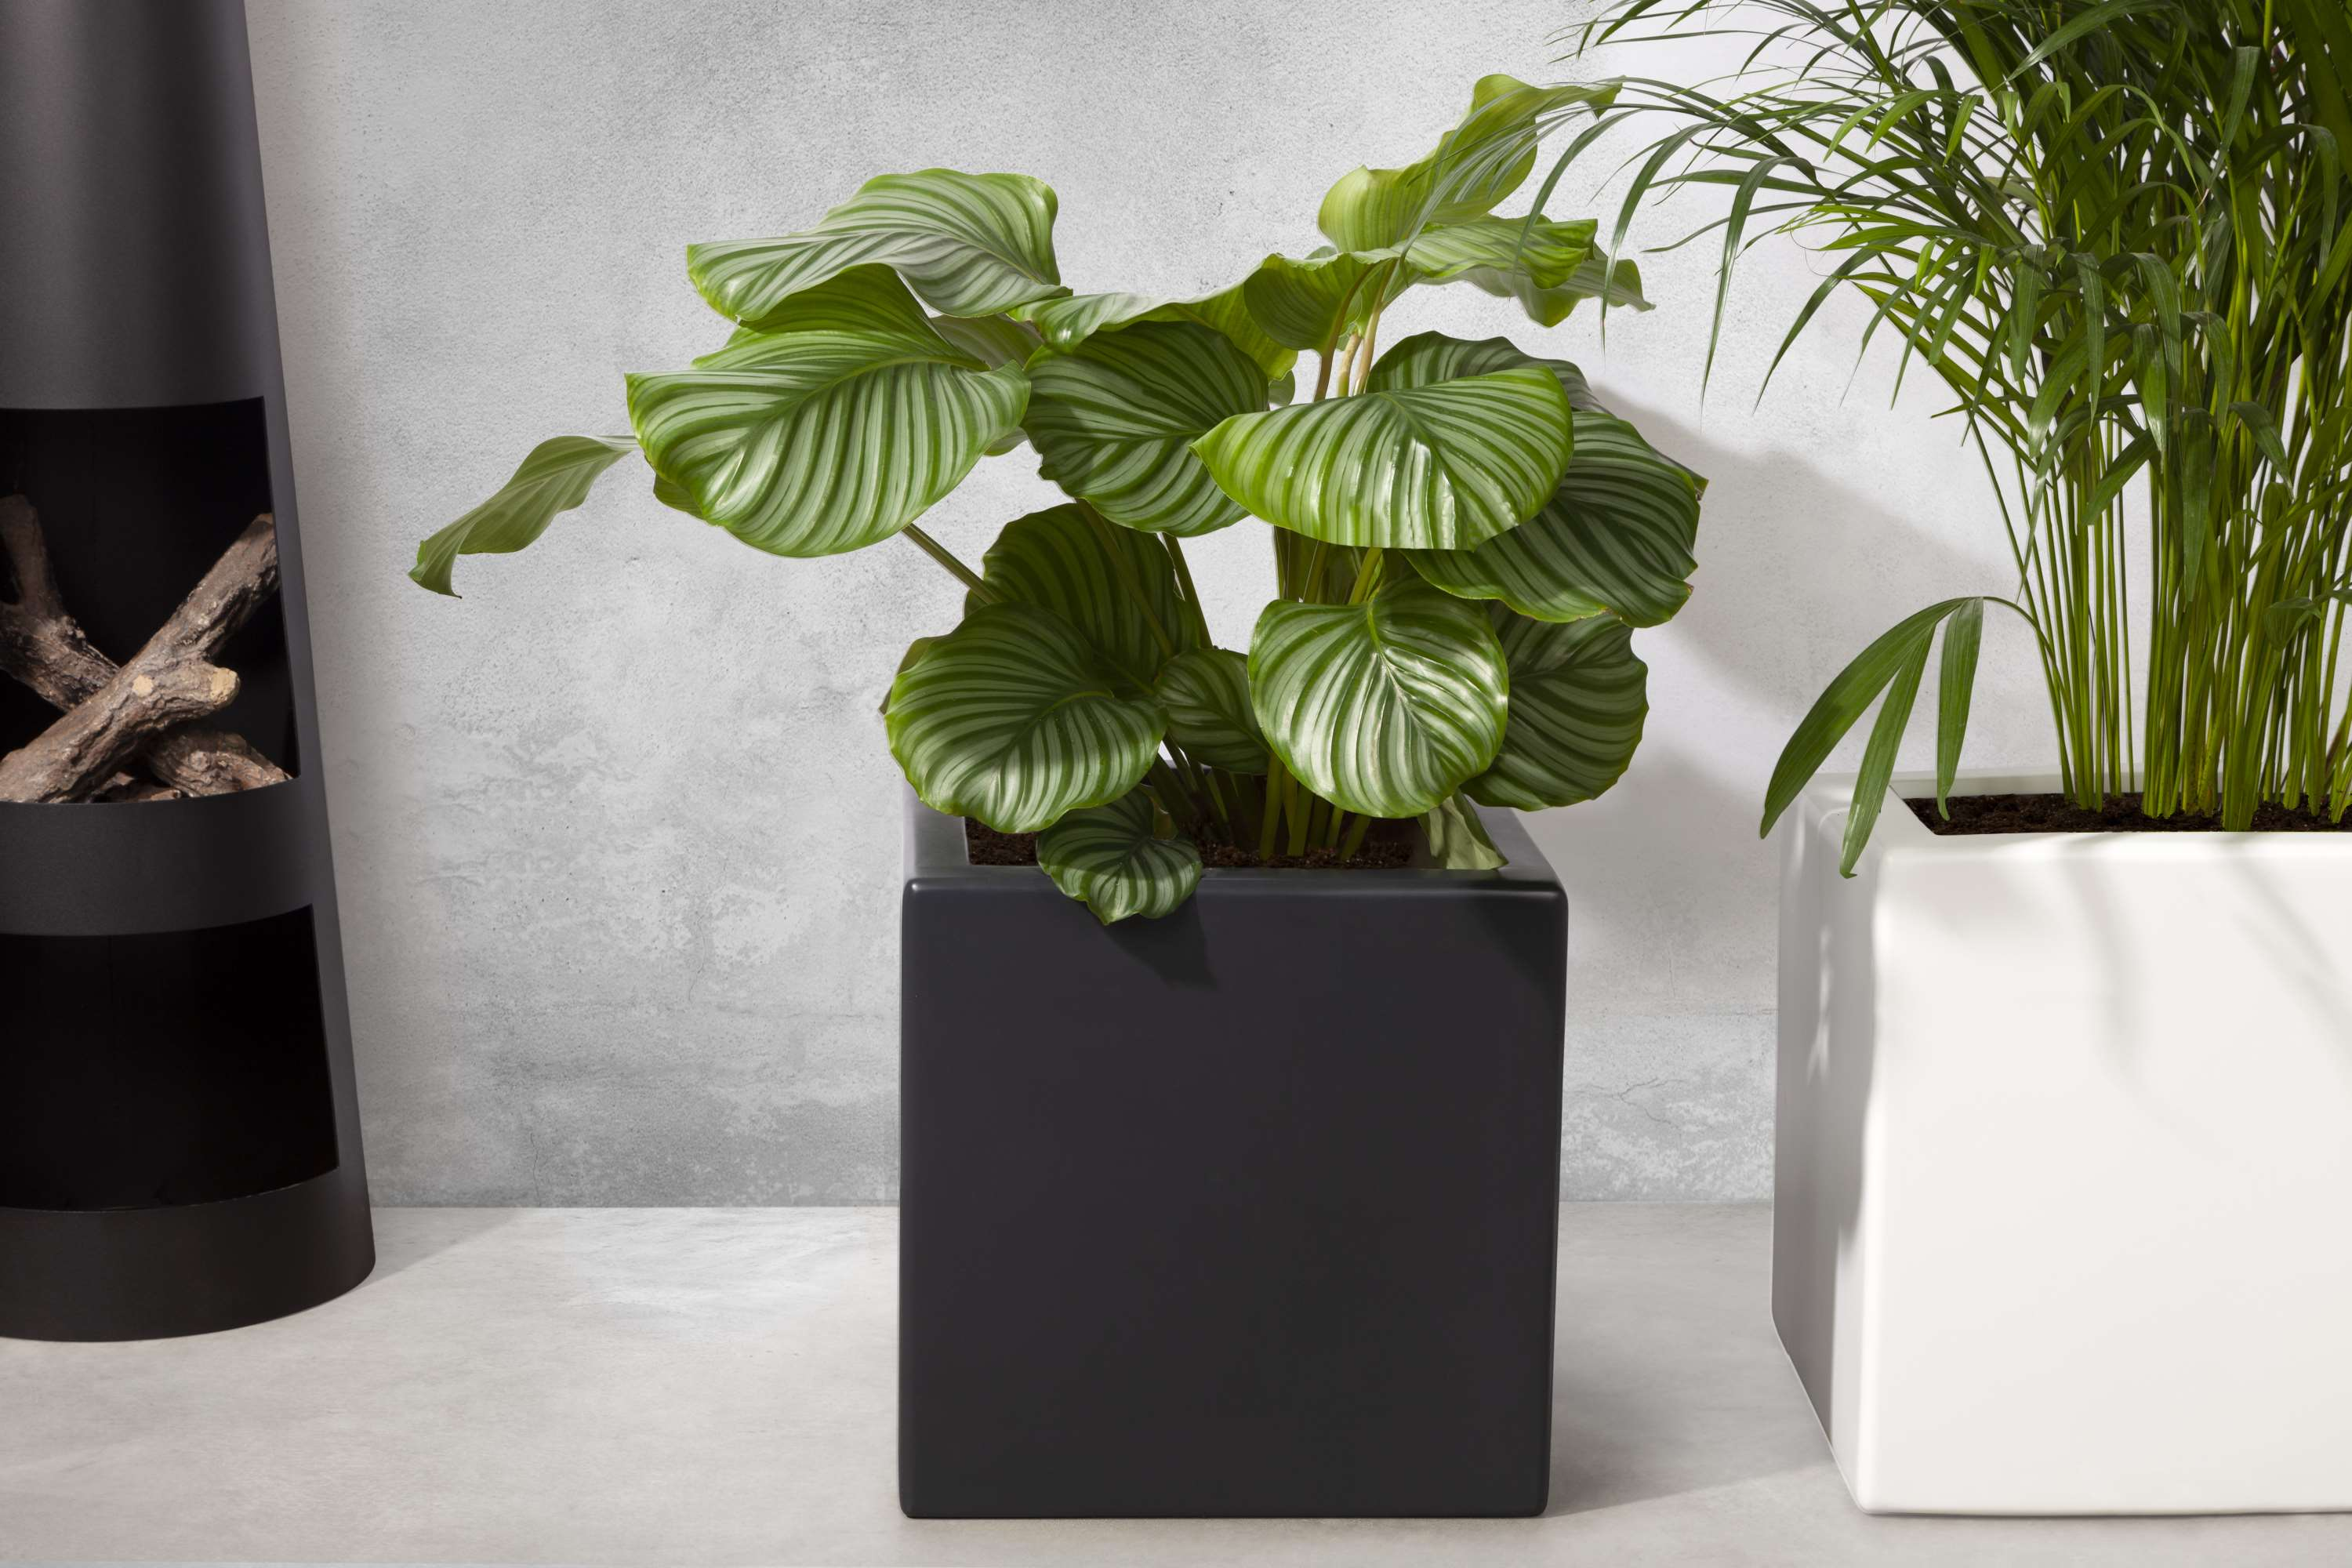 The Enjoyplanter velvet planter - www.enjoyplanters.com or www.polyesterplantenbakken.nl